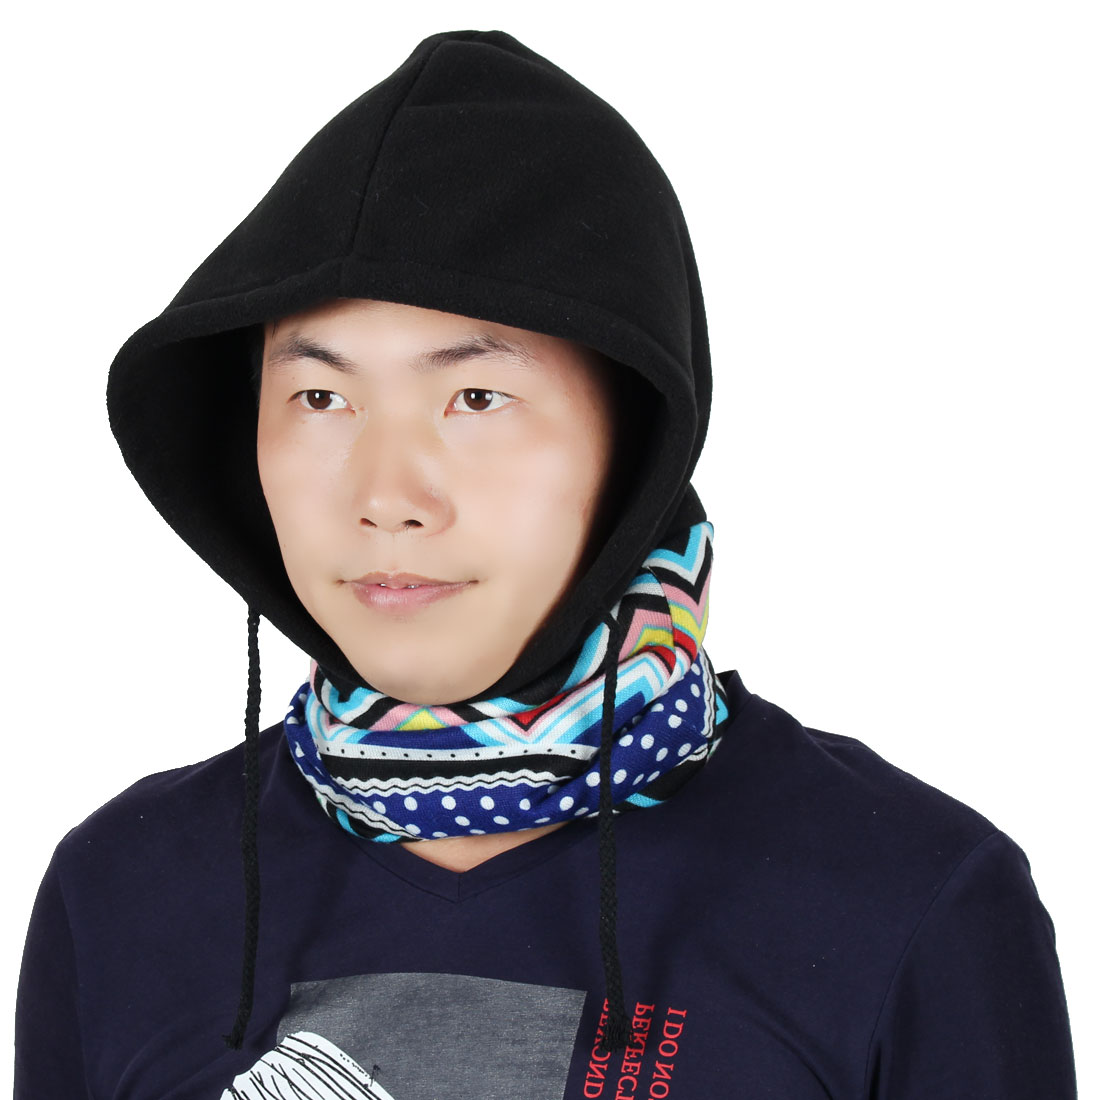 Adjustable Rope Double Layer Head Wrap Neck Protector Hood Balaclava Multicolor by Unique-Bargains